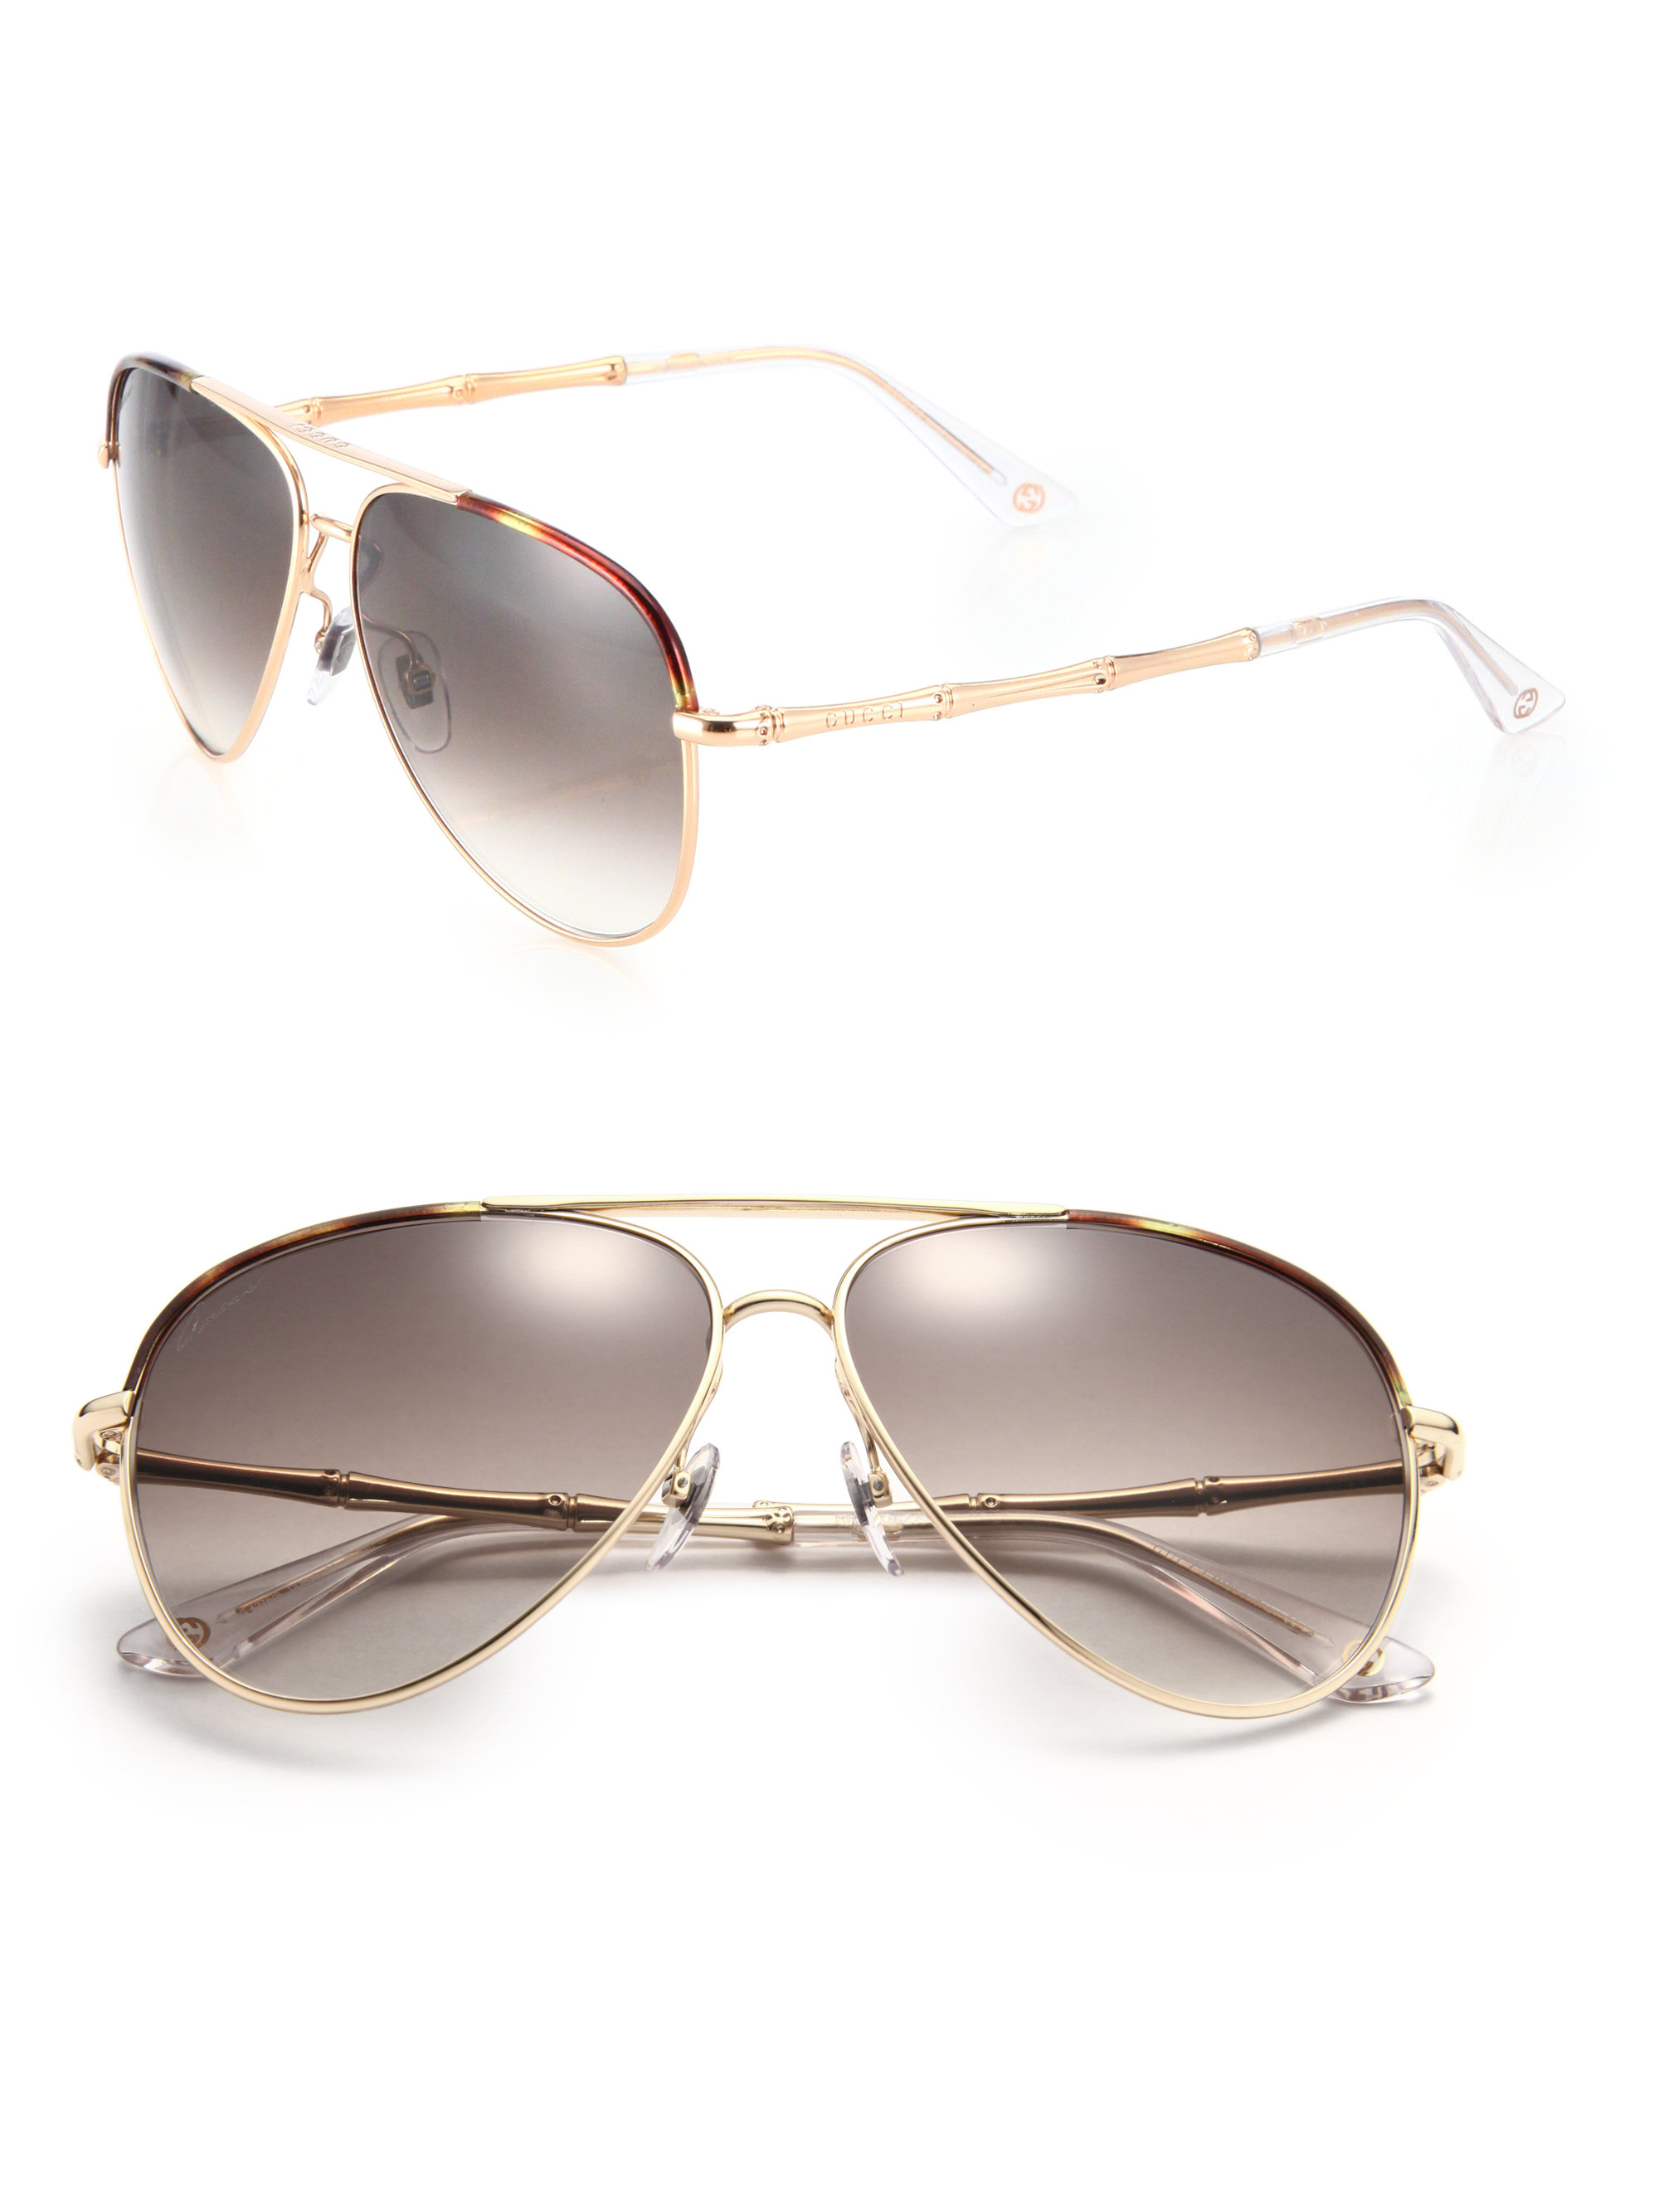 d96462dbd11 Source · Lyst Gucci Bamboo 59mm Aviator Sunglasses in Brown for Men